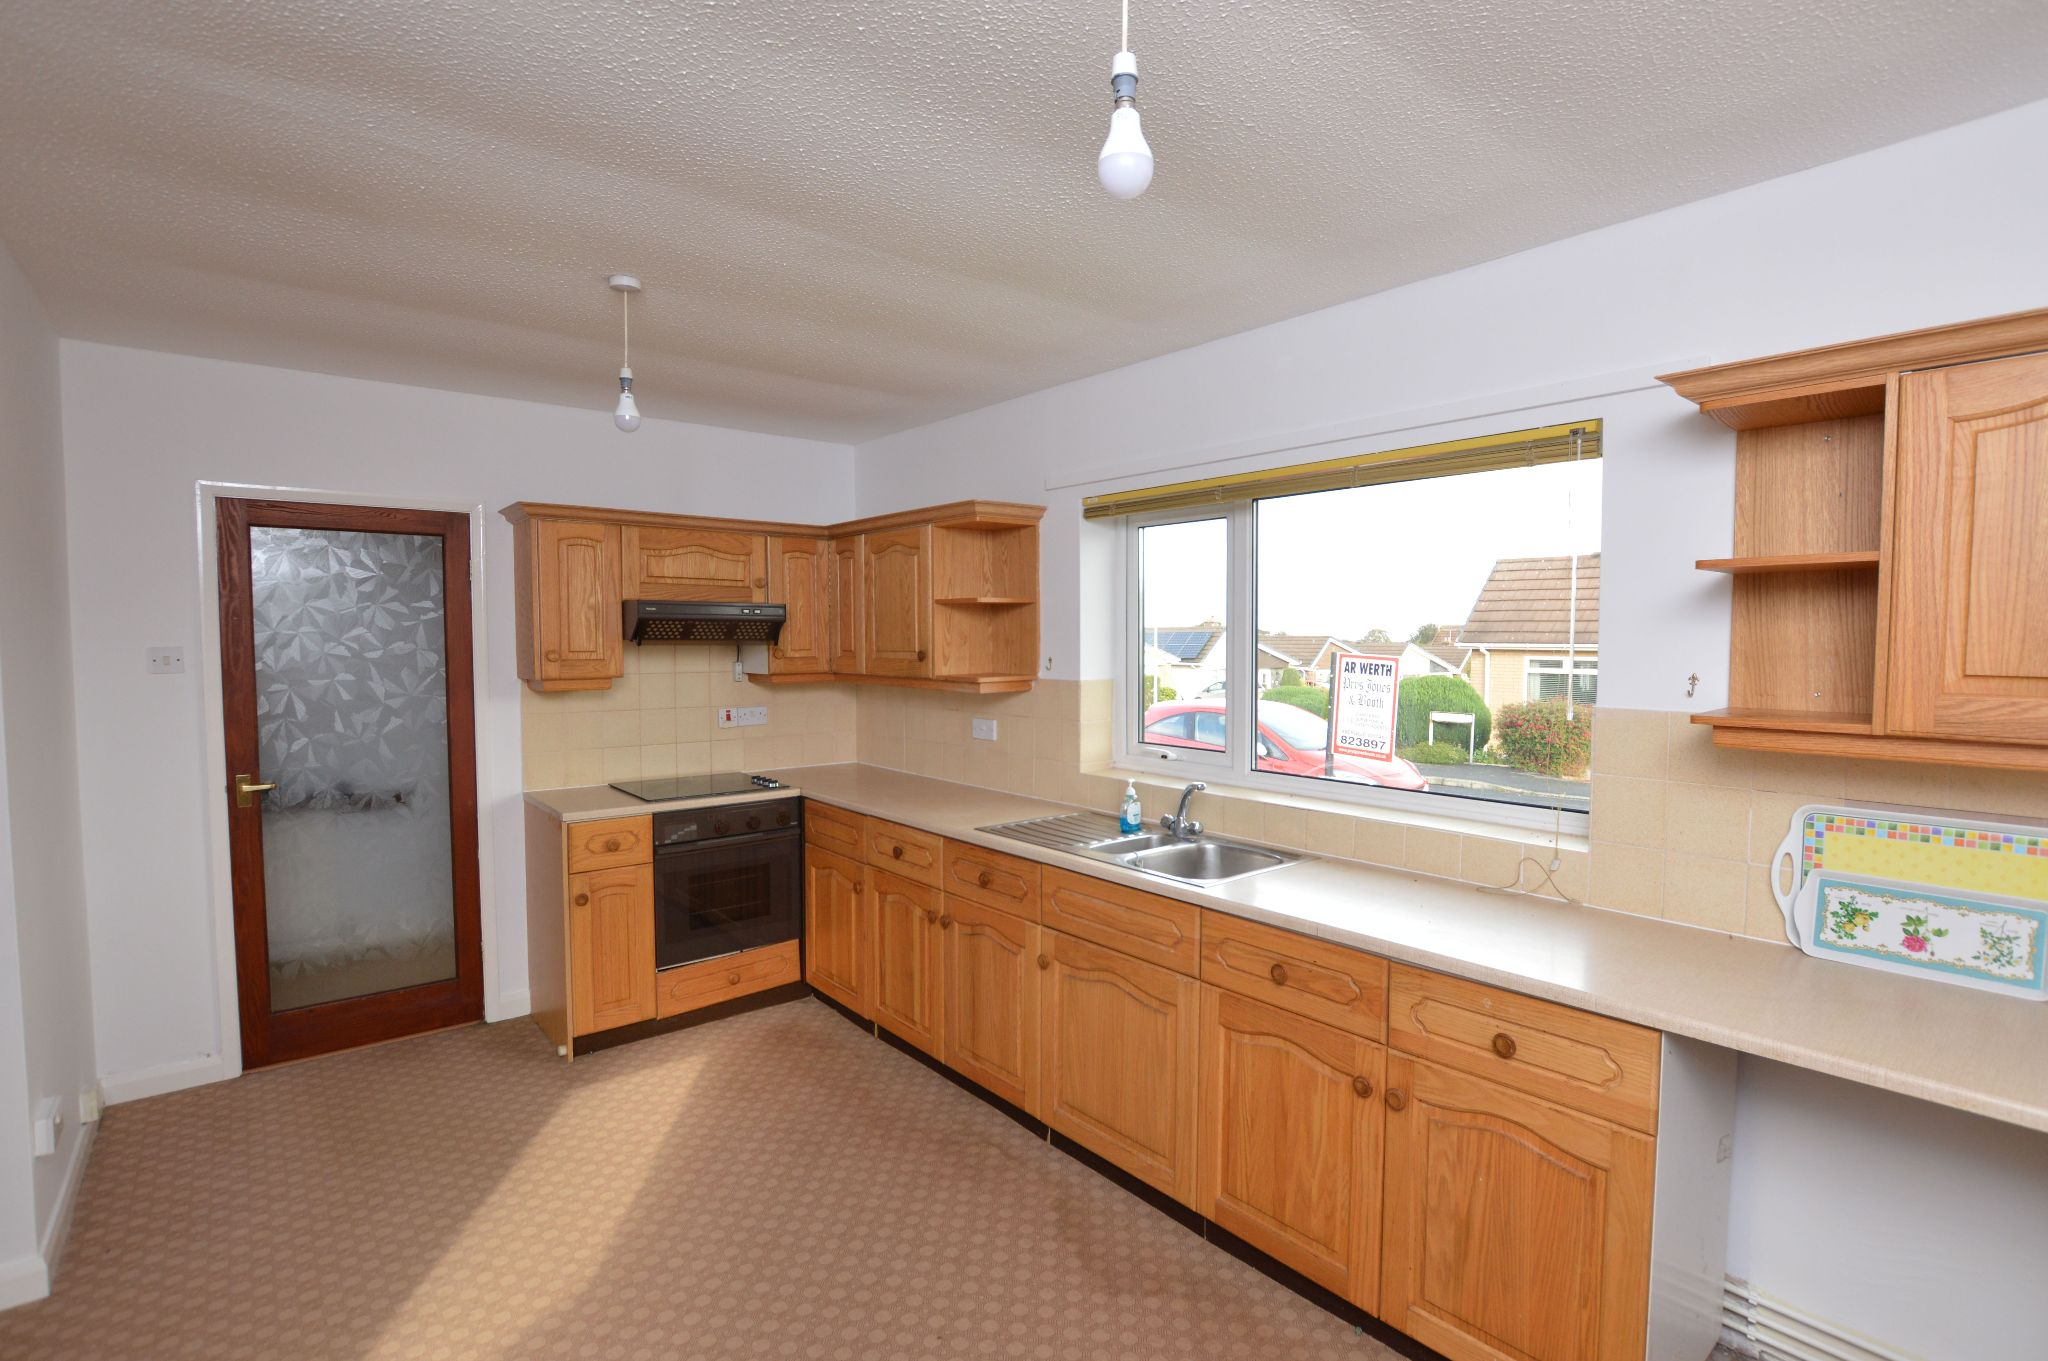 2 bedroom detached bungalow Under Offer in Abergele - Kitchen View 2